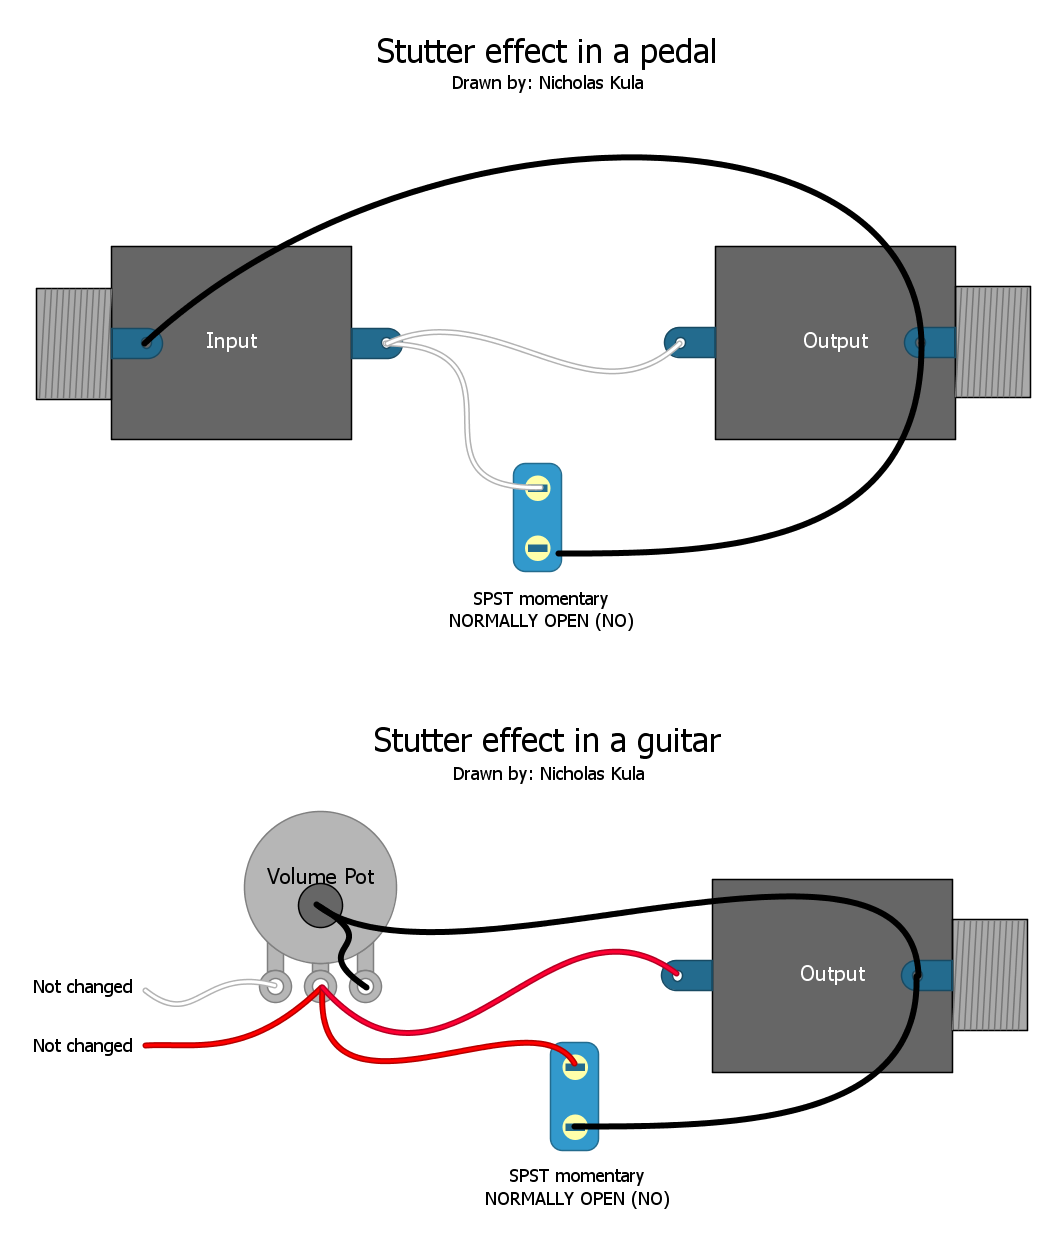 Killswitch Pedal Wiring Diagram Trusted Schematics Guitar Effects Breathe New Life Into Your Rig For 10 Or Less Tone Report Electrical